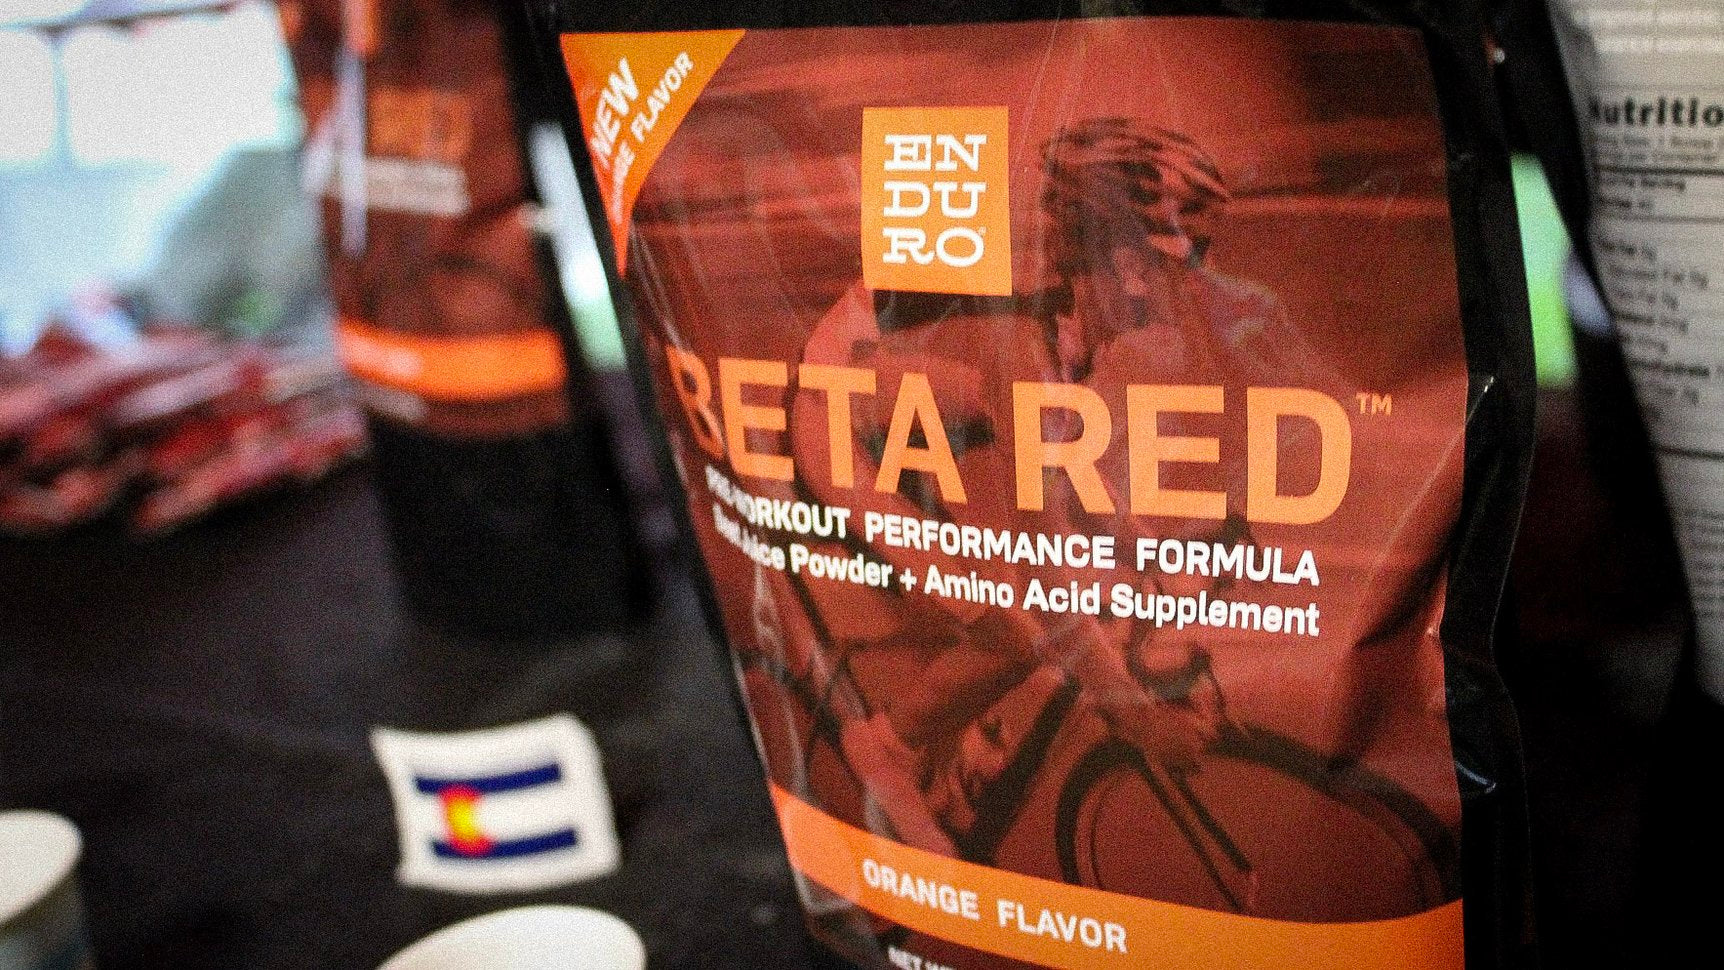 Beta Red Pre Workout Performance Formula